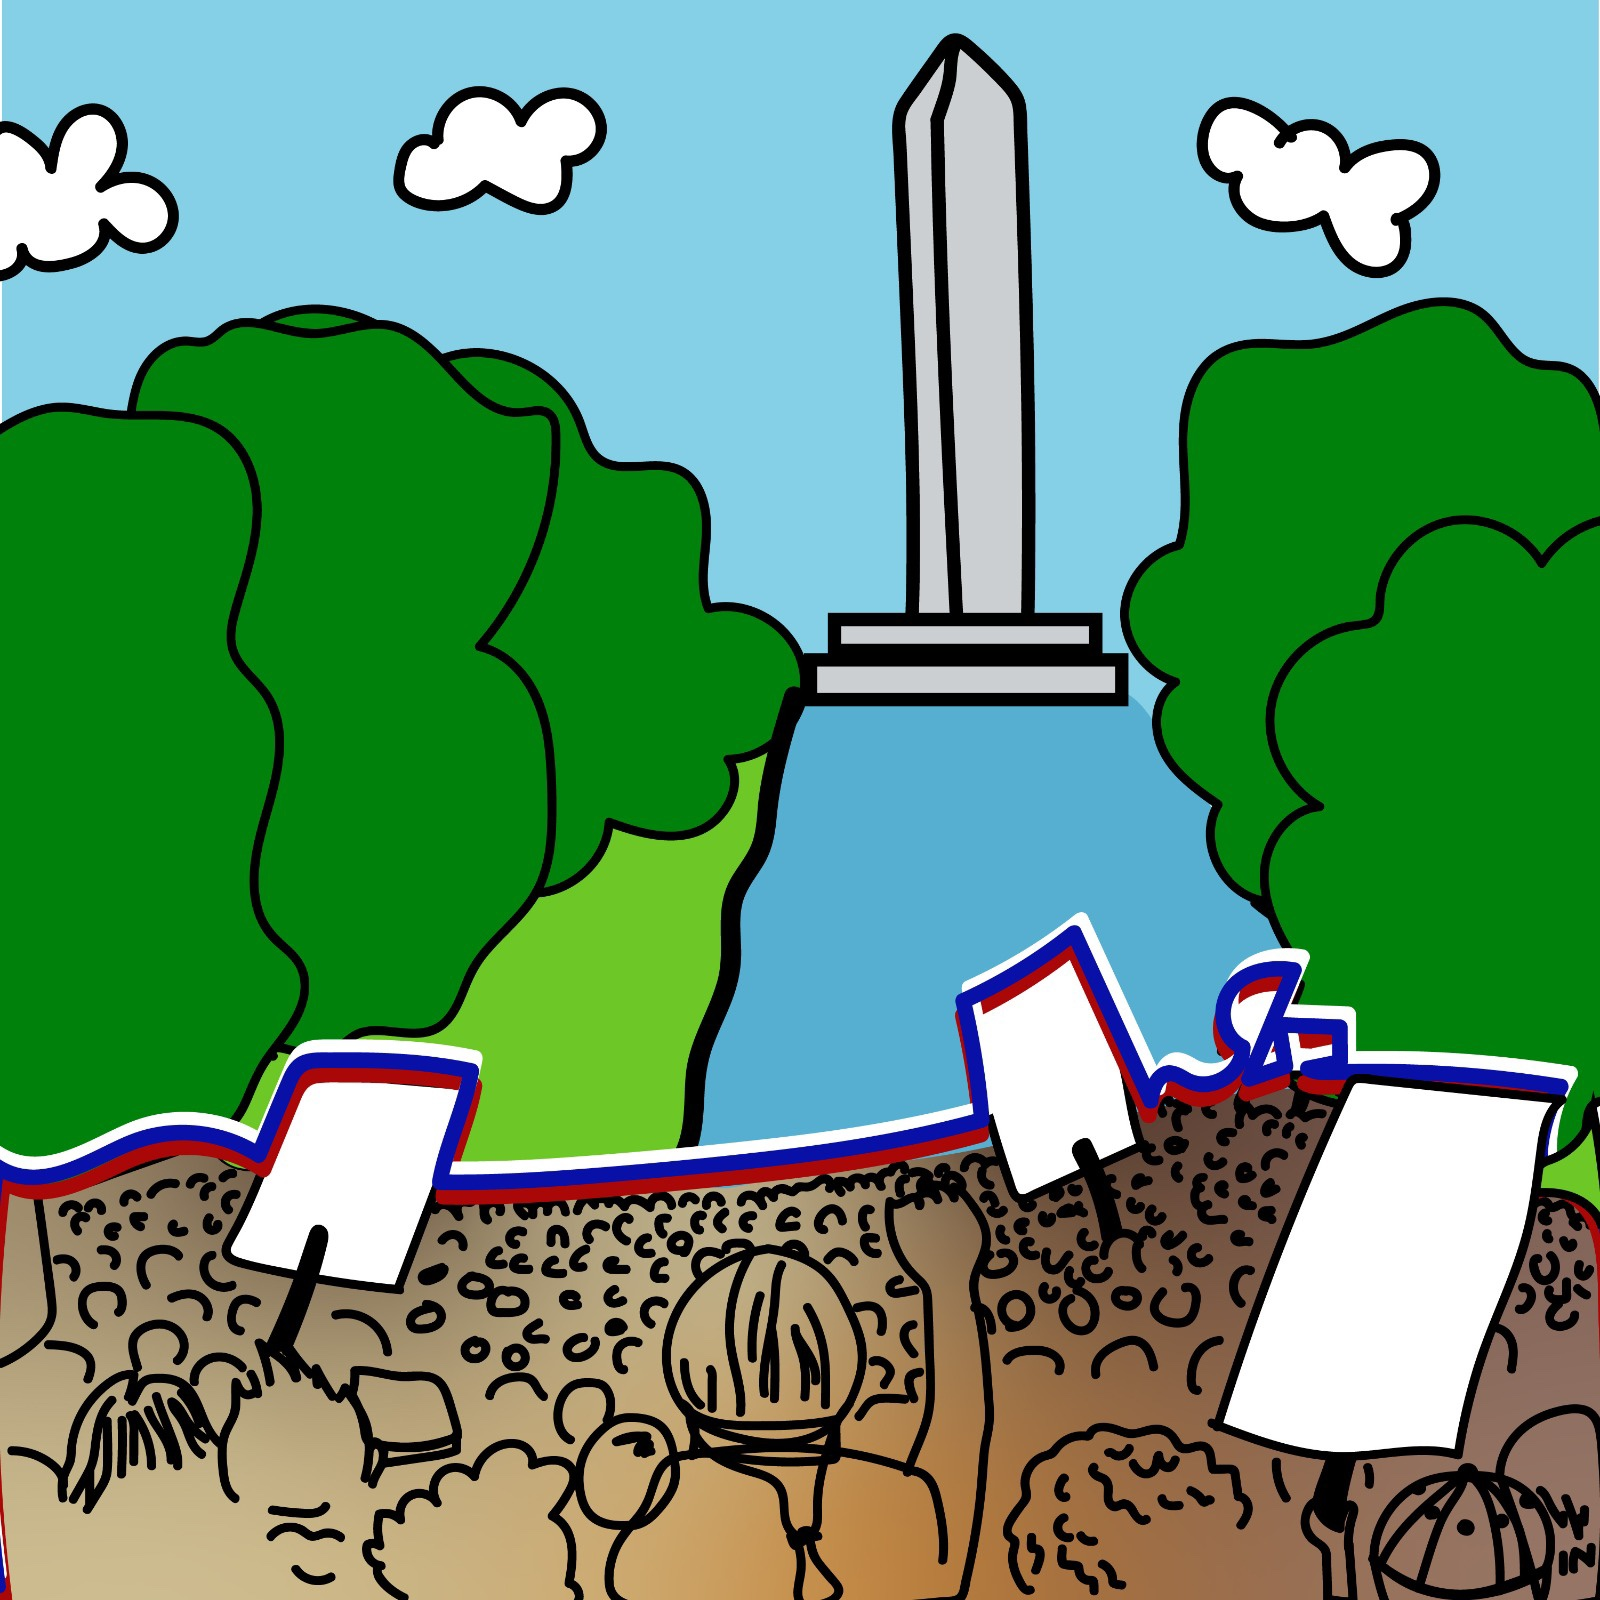 Rita Azar illustrates March on Washington for 360 MAGAZINE